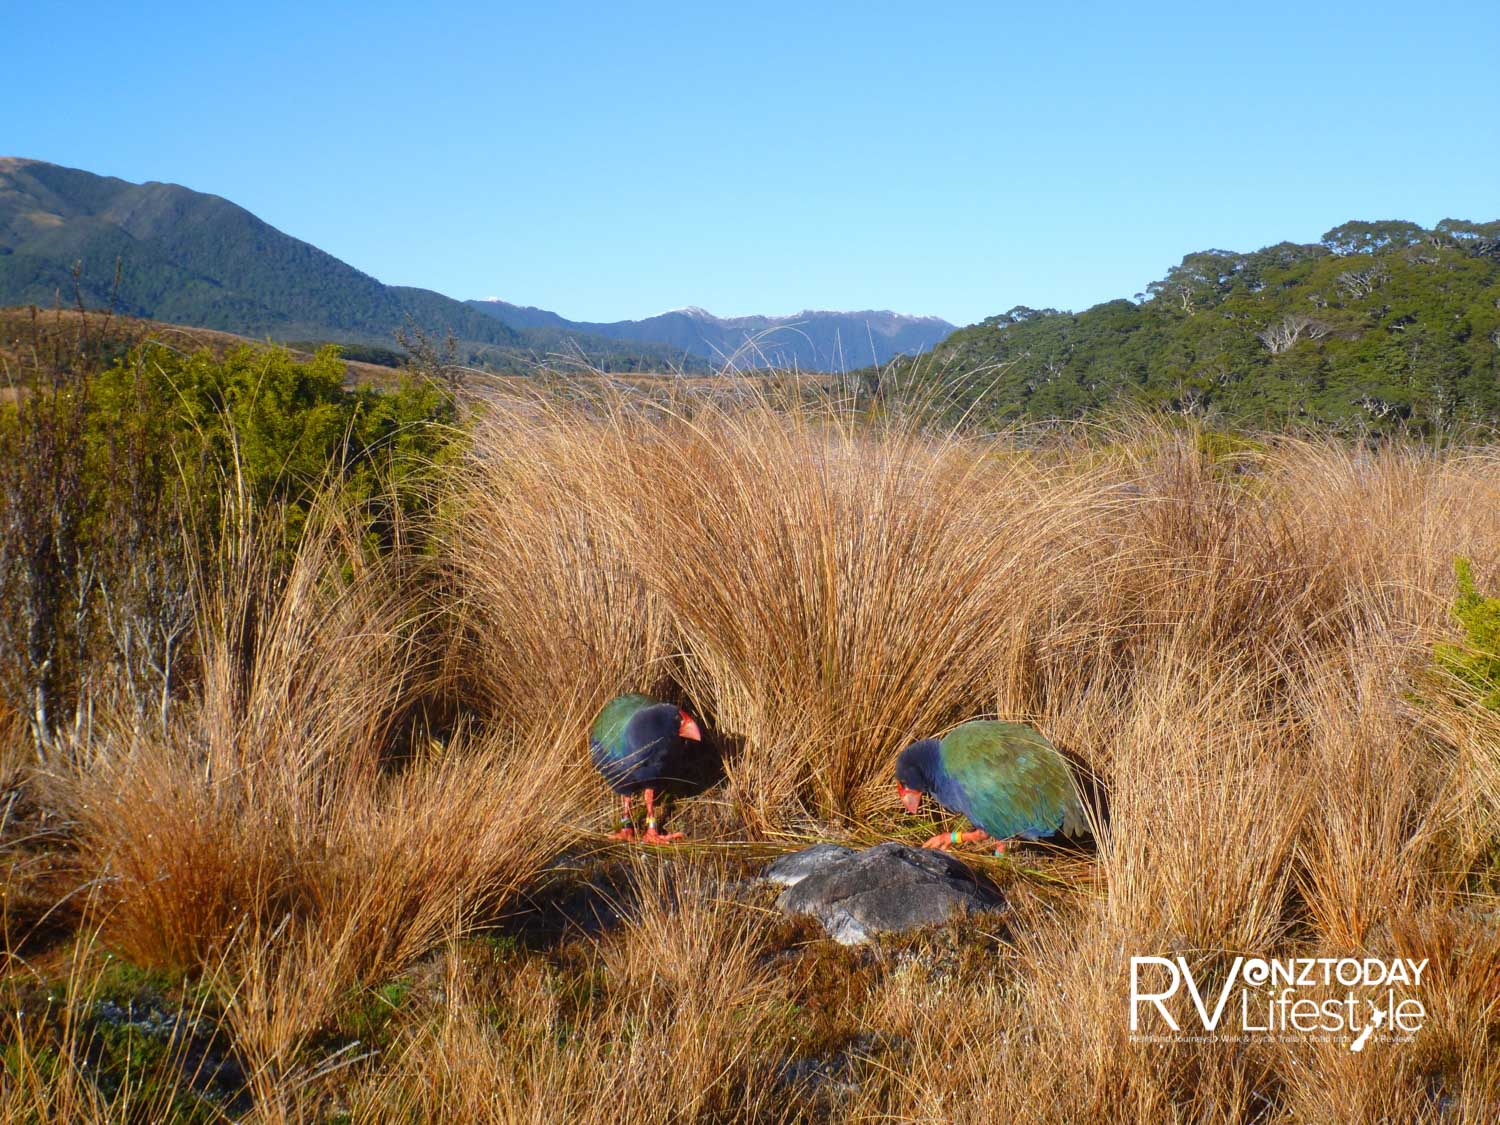 Takahē in the wild, a rare sight to behold